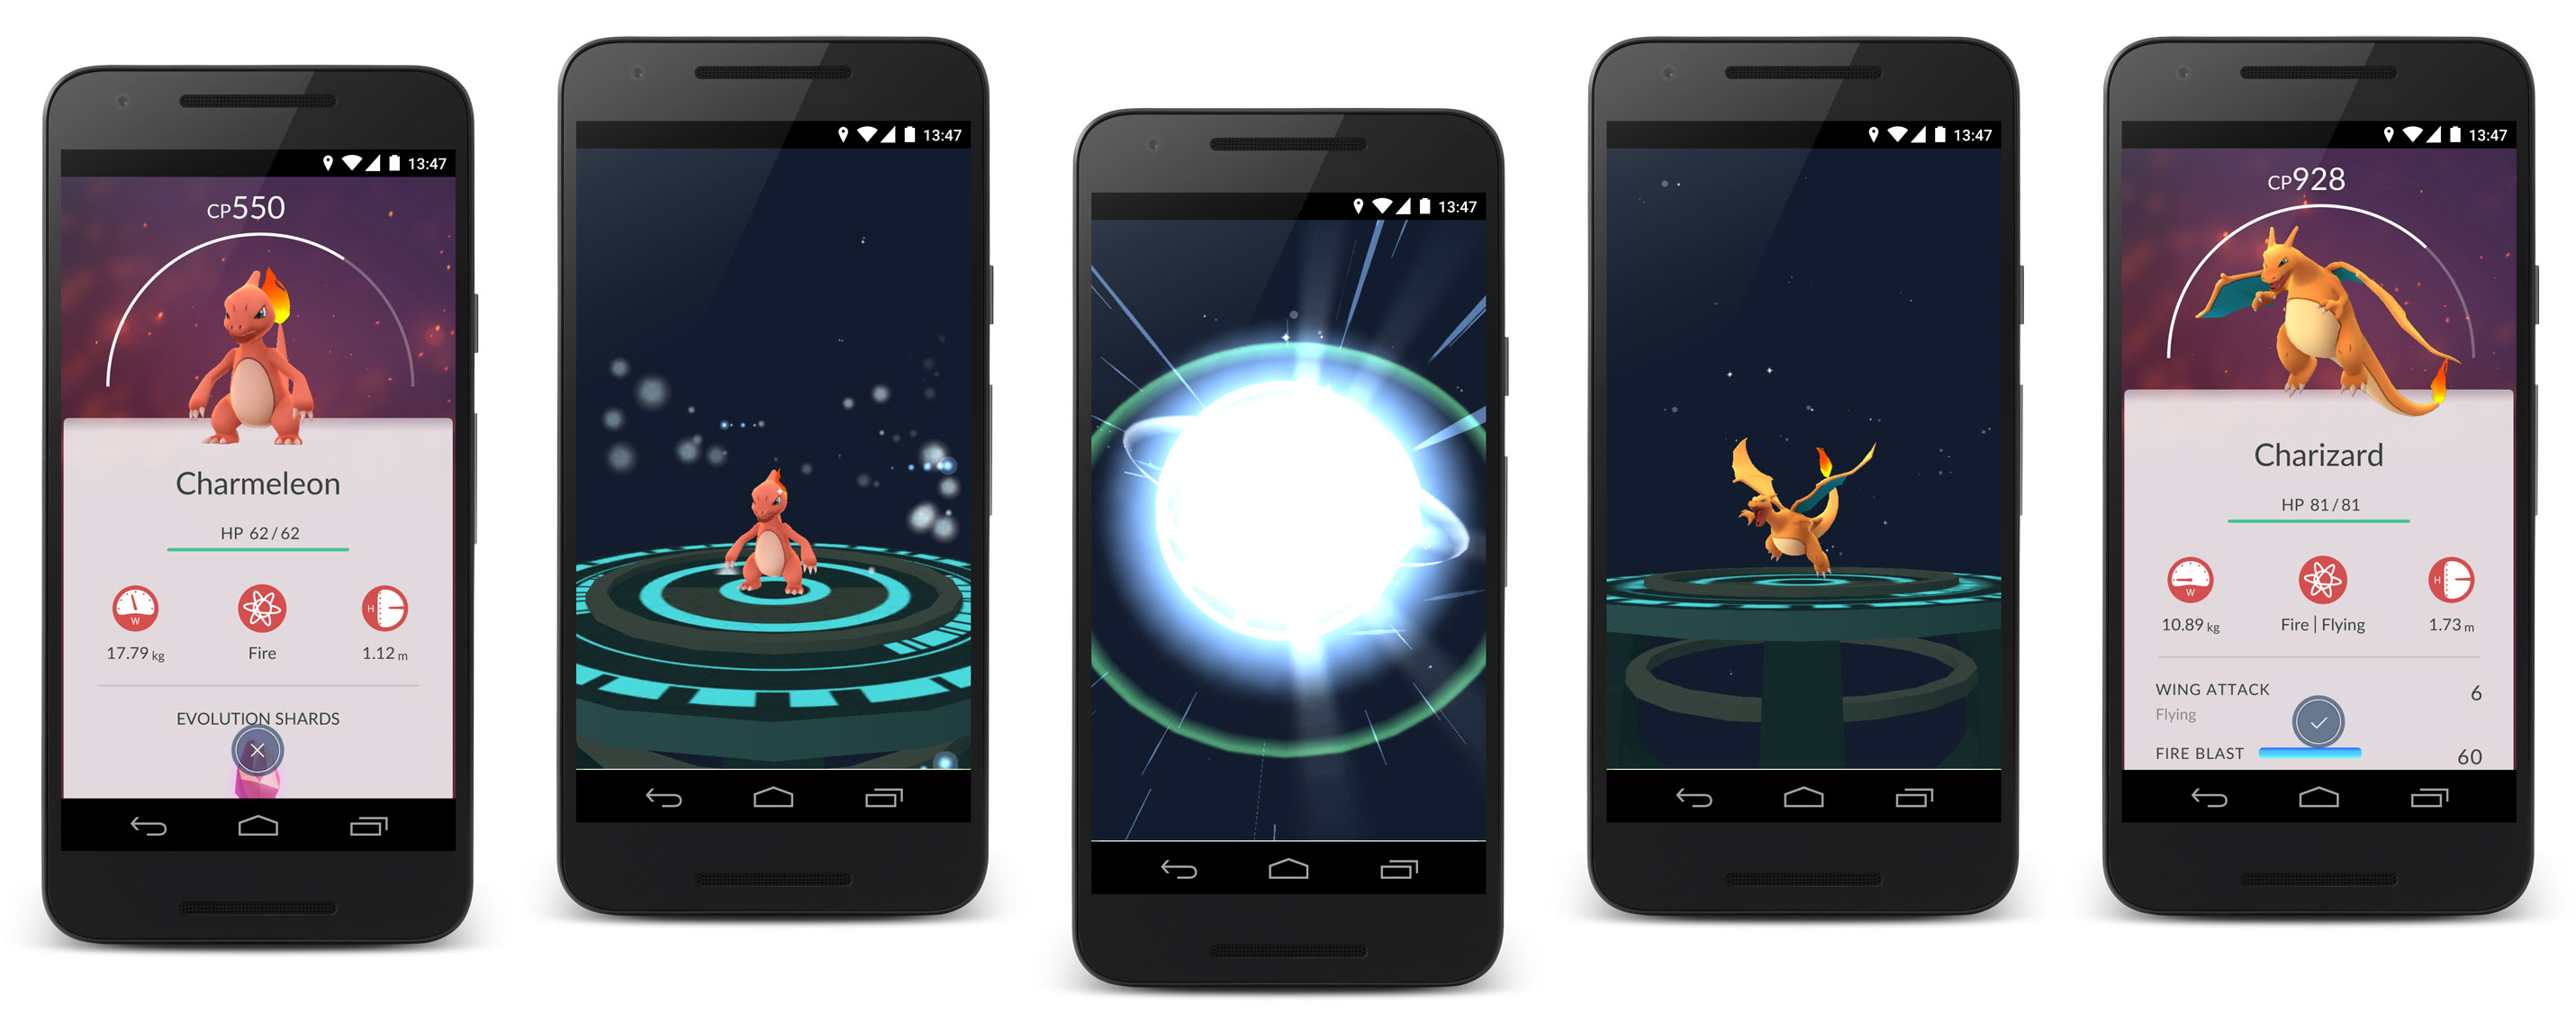 Pokemon GO release Summer 2016 - Evolution